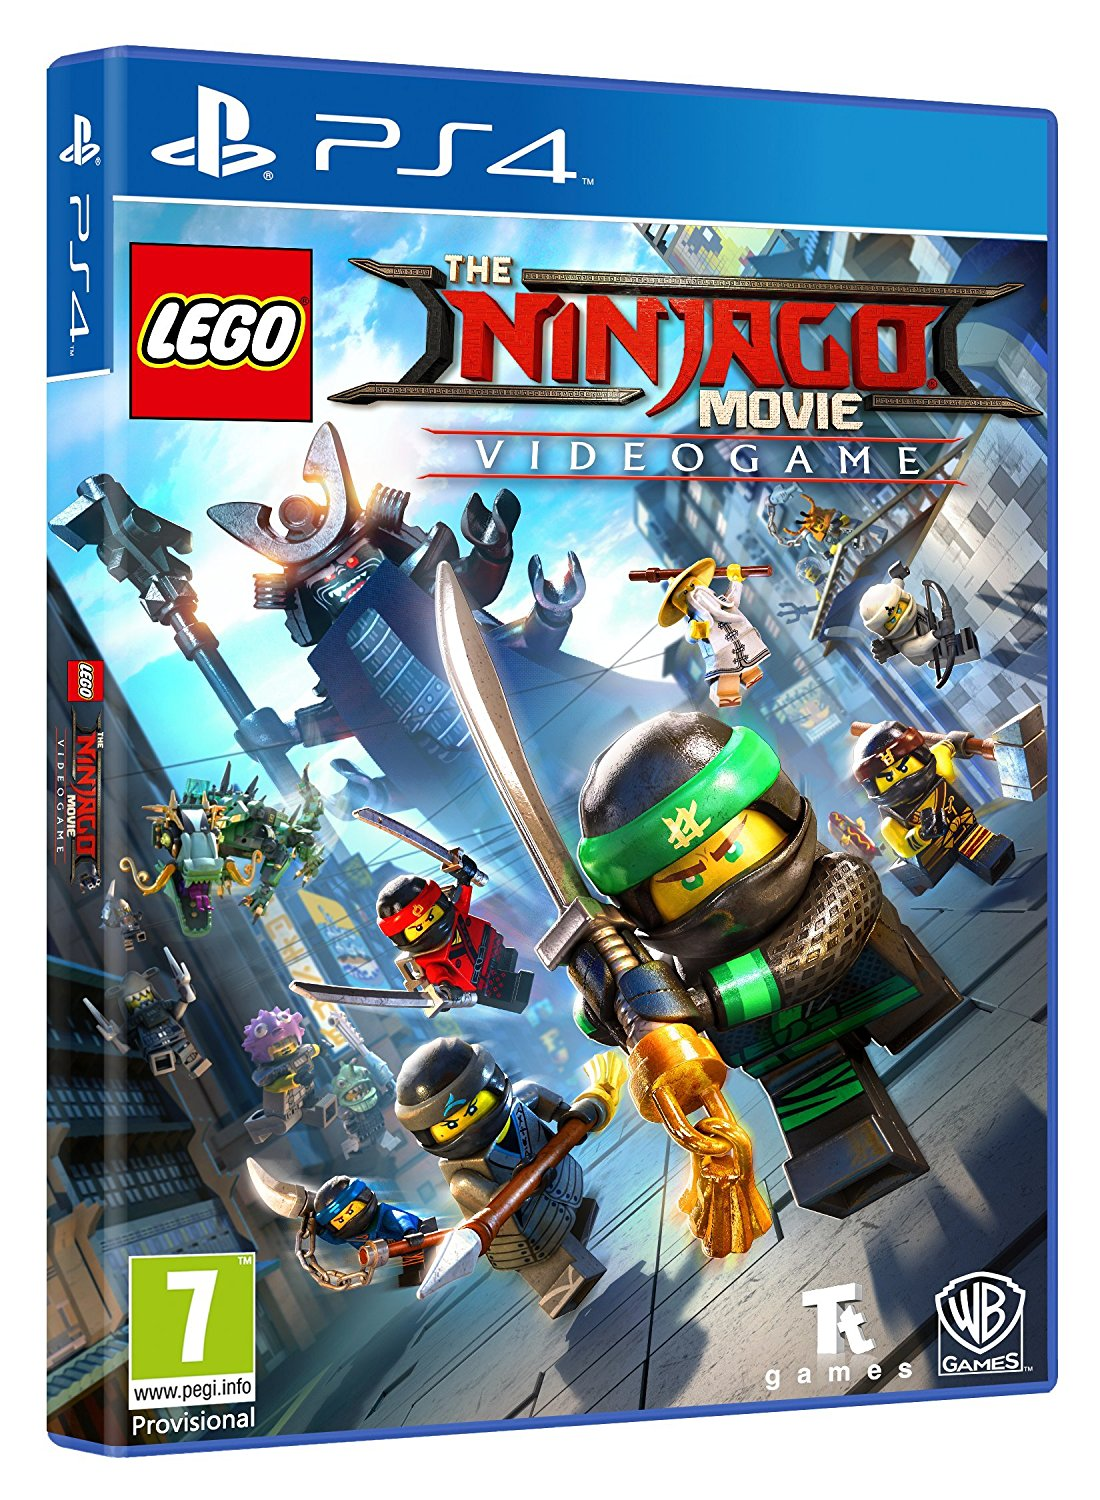 LEGO NINJAGO Movie Video Game PS4